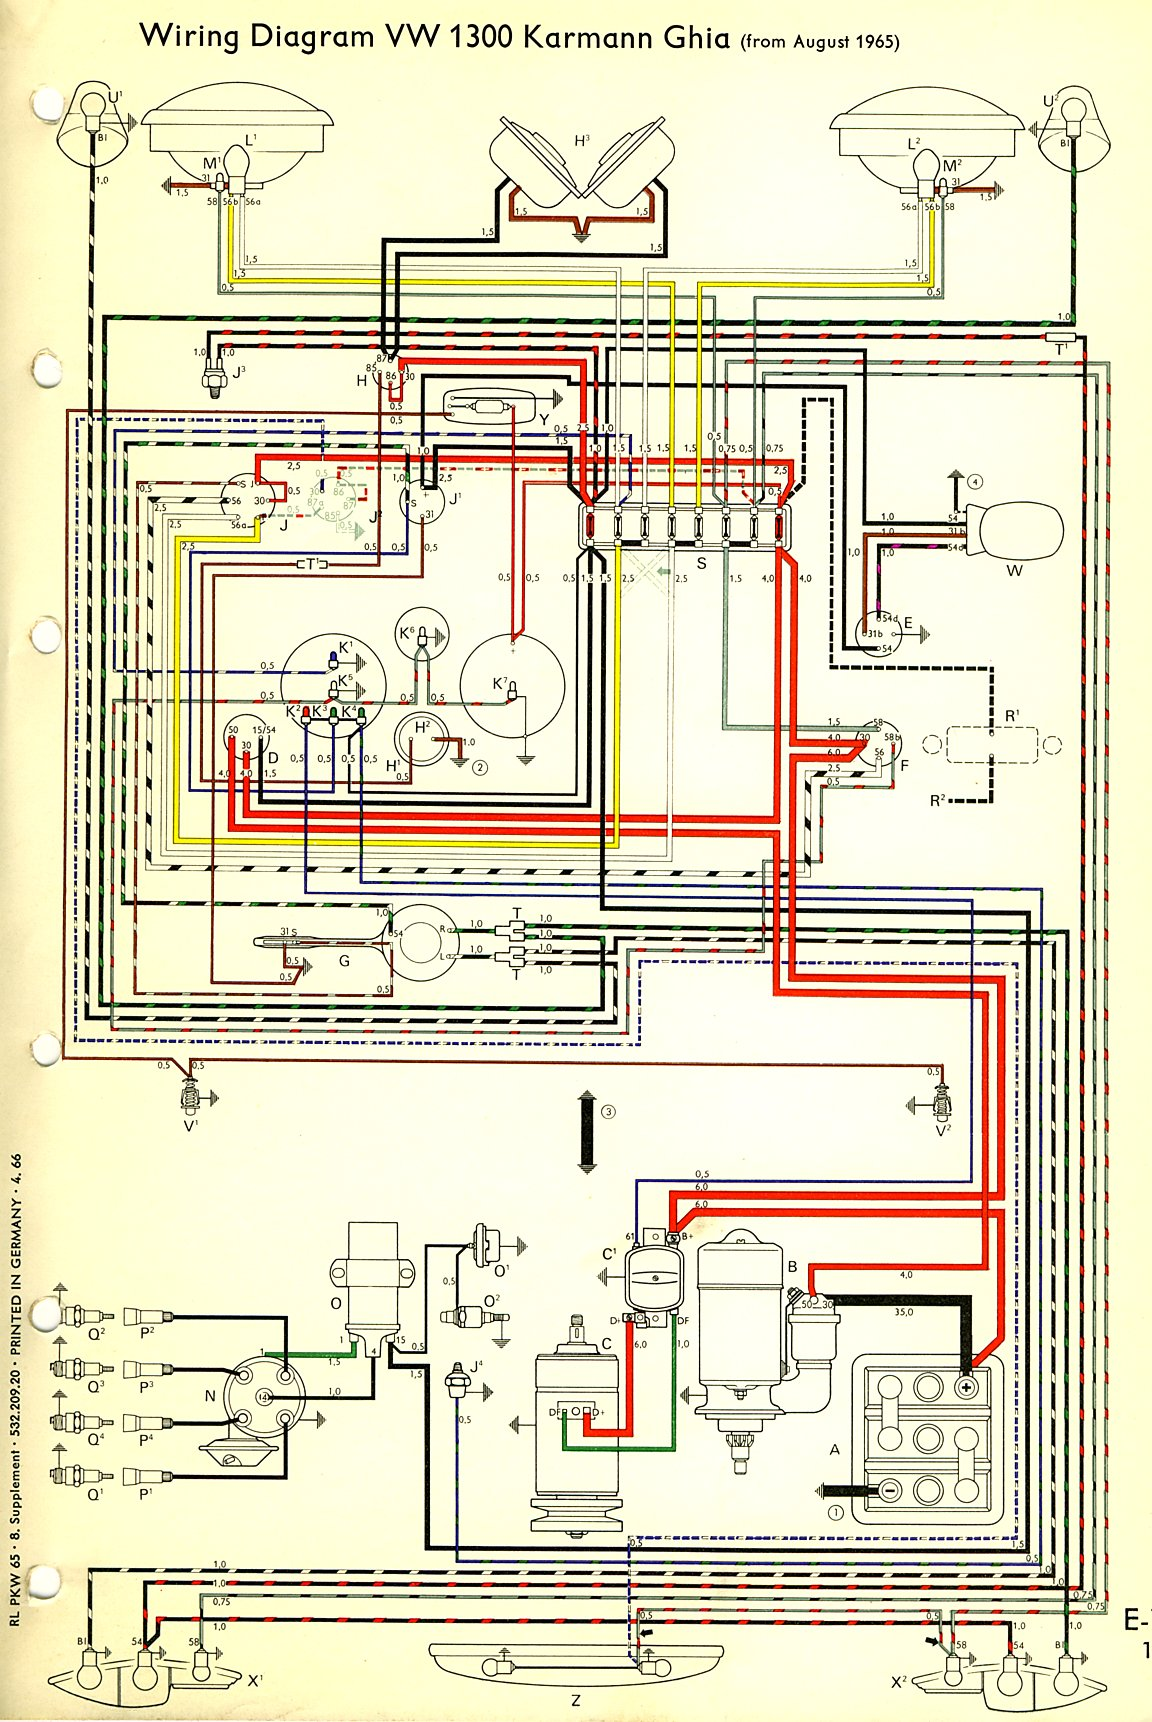 1986 chevy diesel alternator wiring diagram thesamba.com :: karmann ghia wiring diagrams